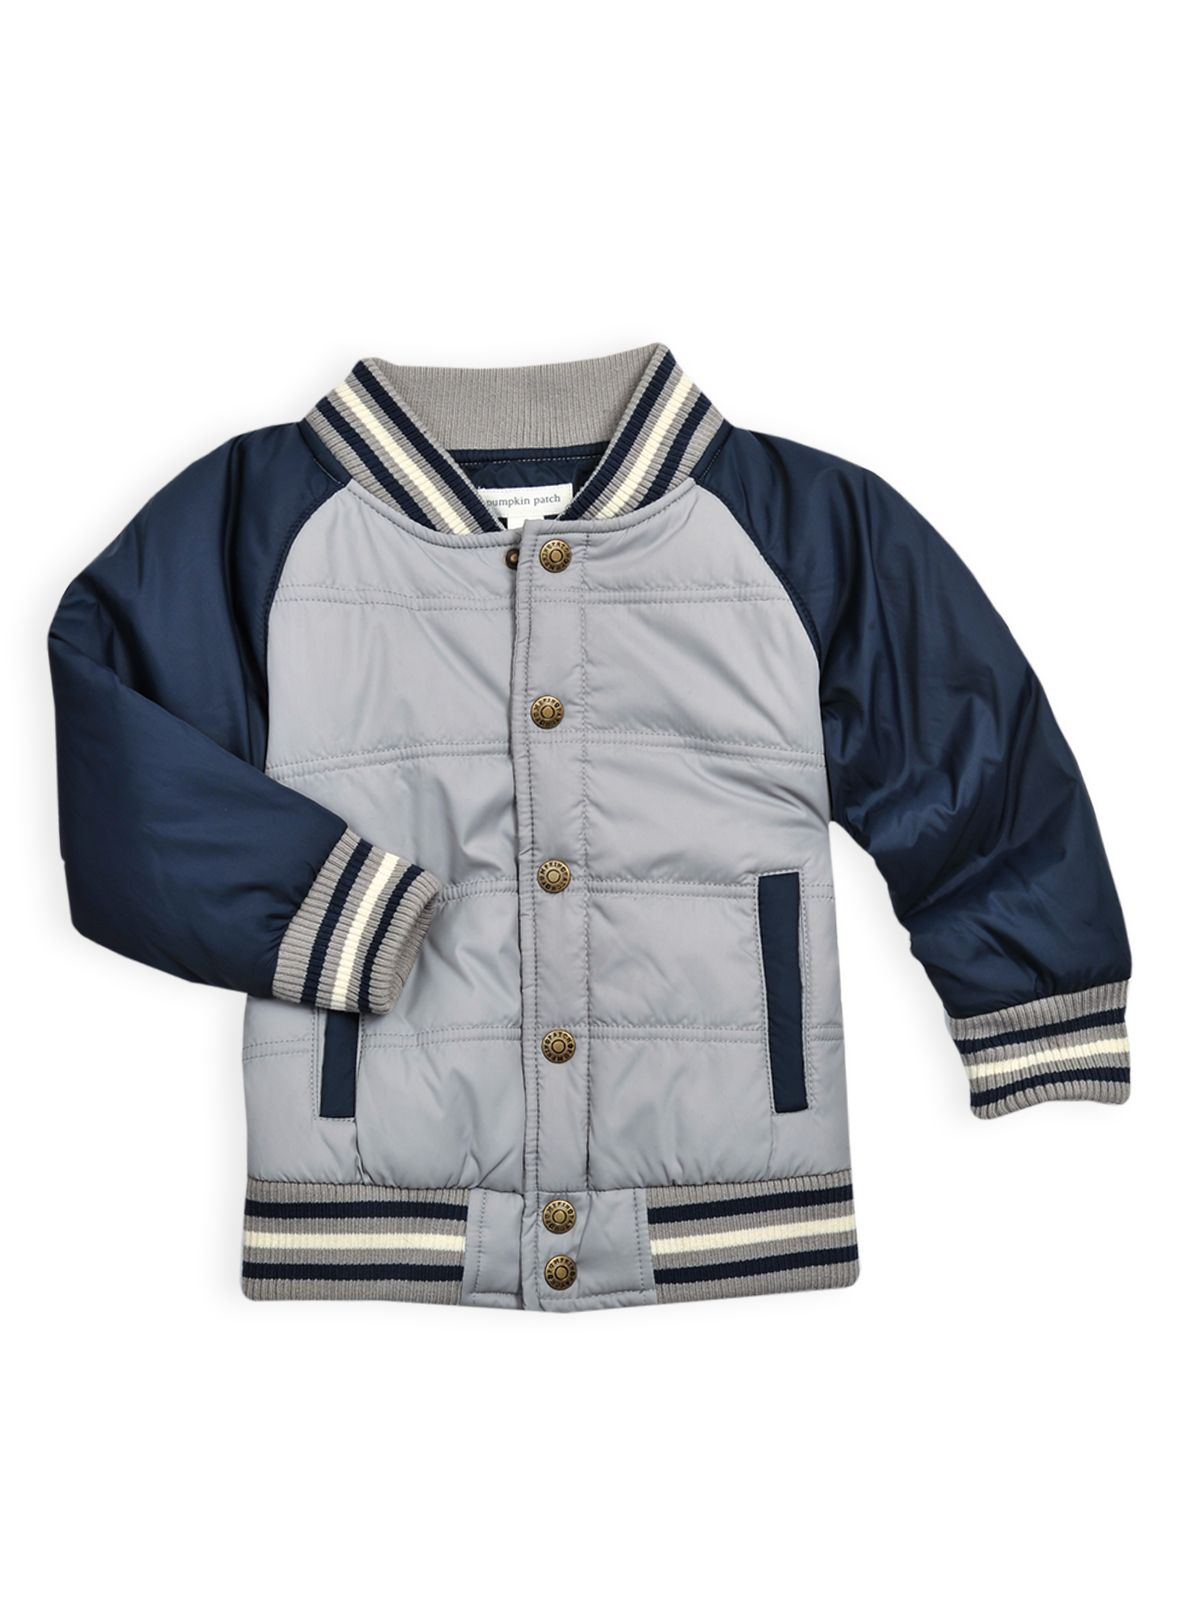 Boys quilted baseball jacket